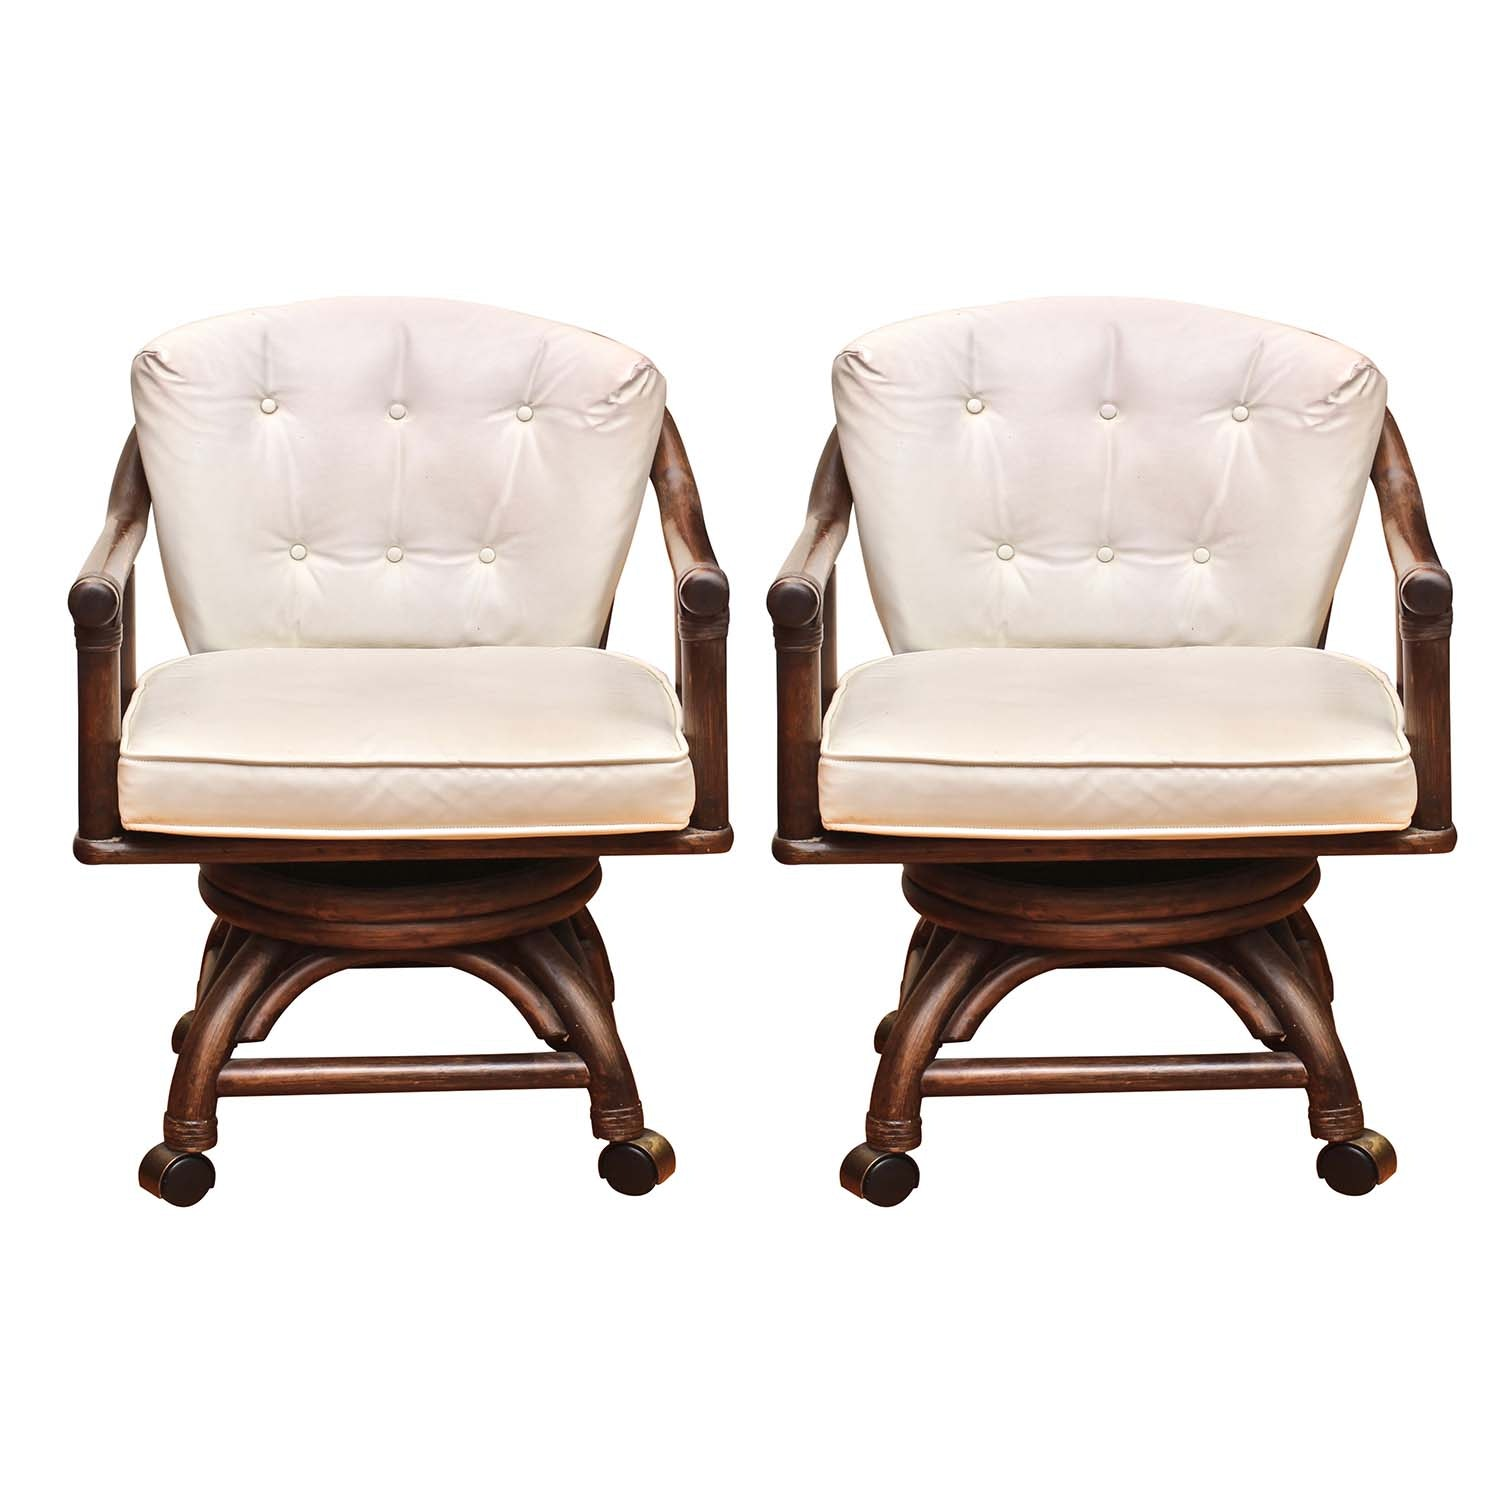 Two Rattan Specialties Mid Century Spring and Swivel Arm Chairs